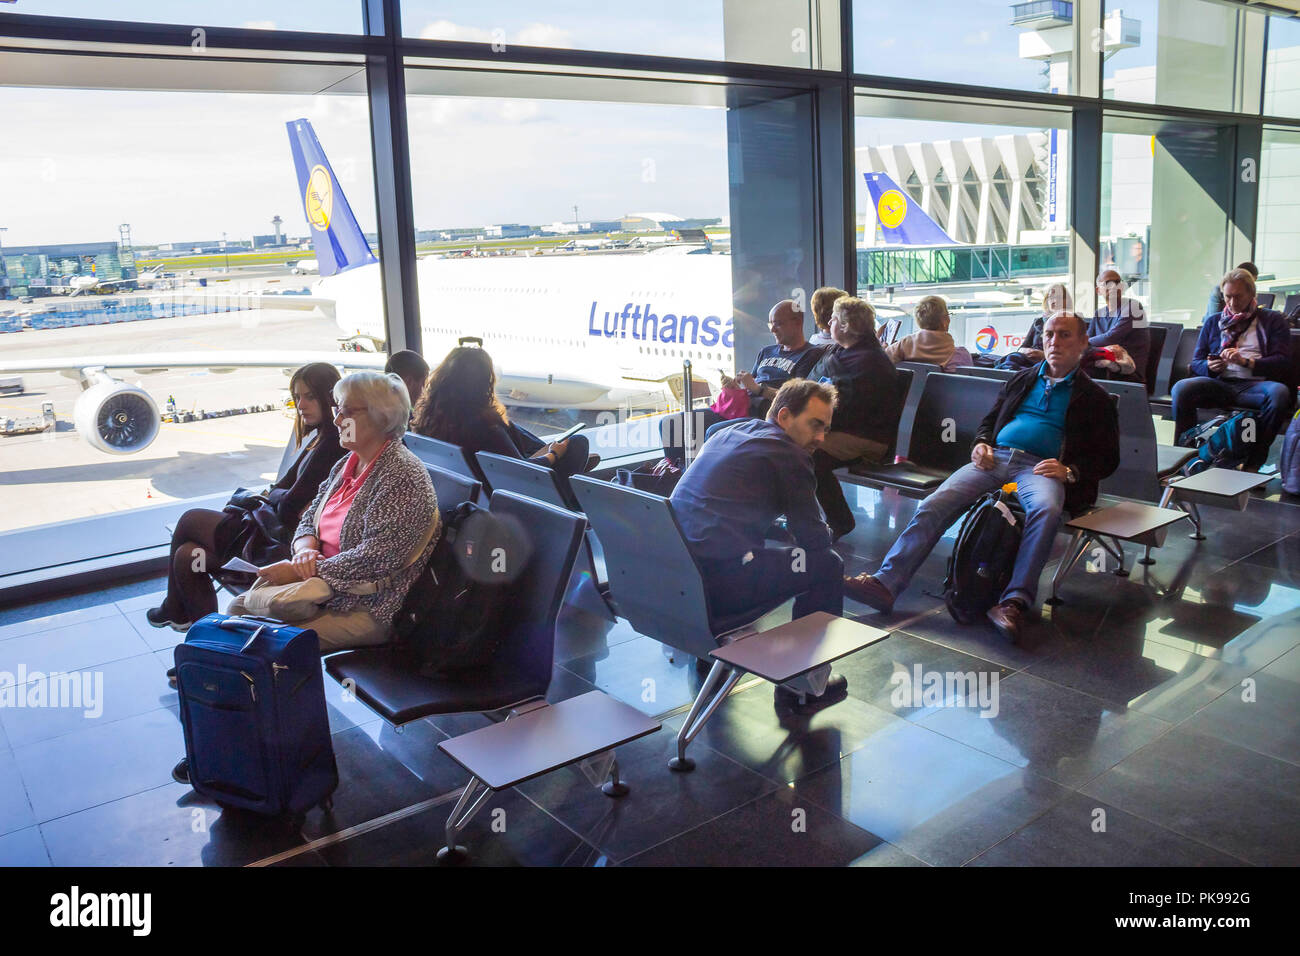 Frankfurt, Germany - April 28, 2018: passengers sitting and waiting for departure inside of Frankfurt Pearson Airport at Frankfurt, Germany on April 28, 2018 - Stock Image